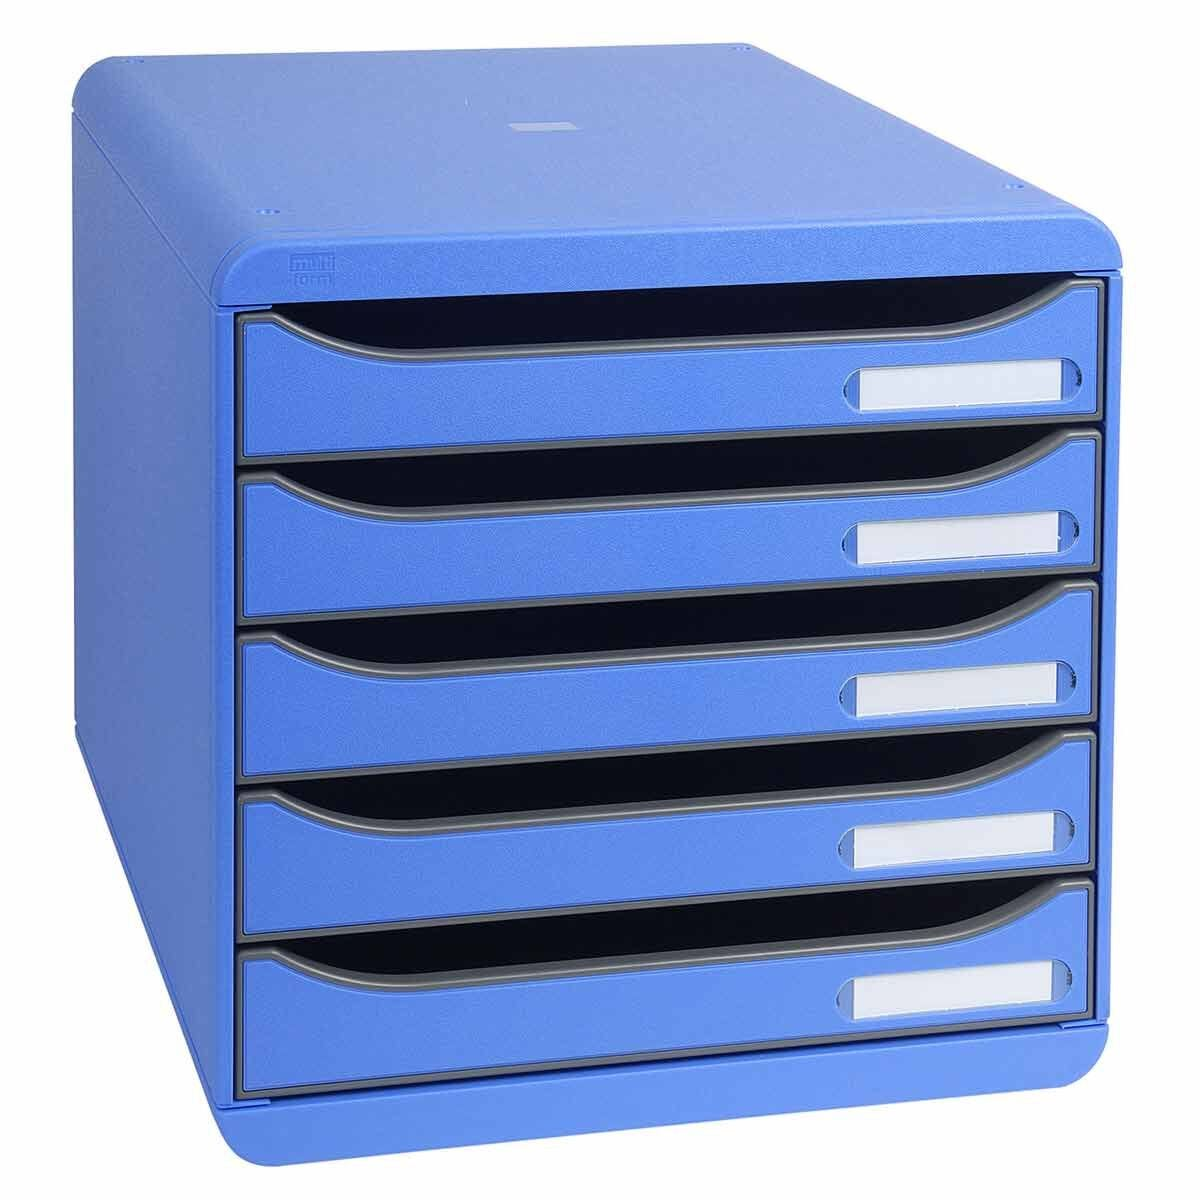 Exacompta BIG-BOX PLUS Iderama 5 Drawer Unit Ice Blue